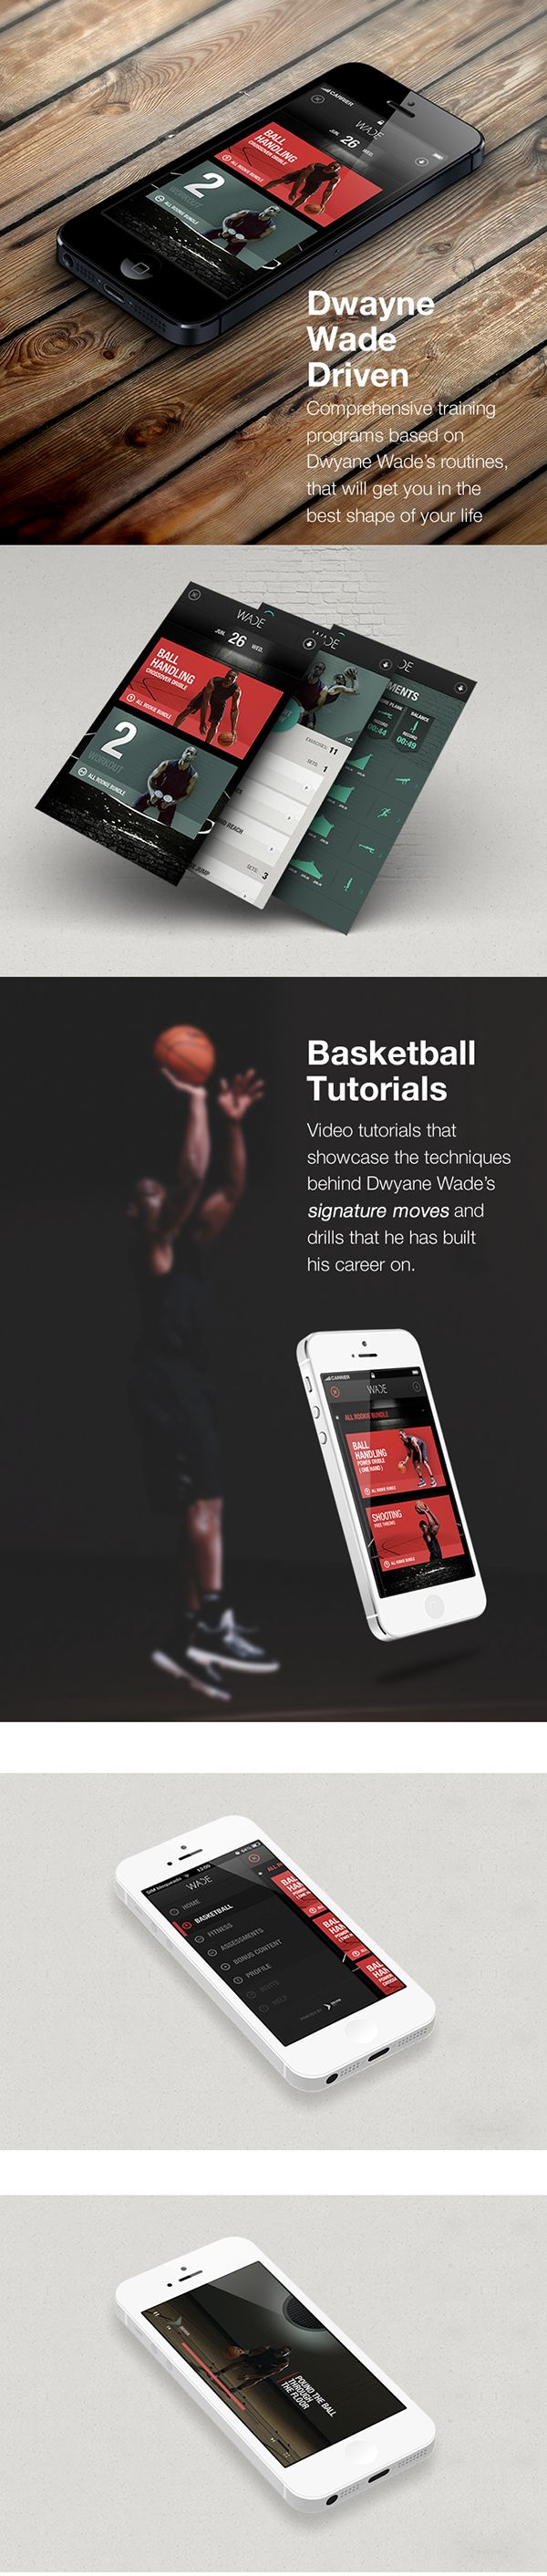 Dwyane Wade Driven on App Design Served